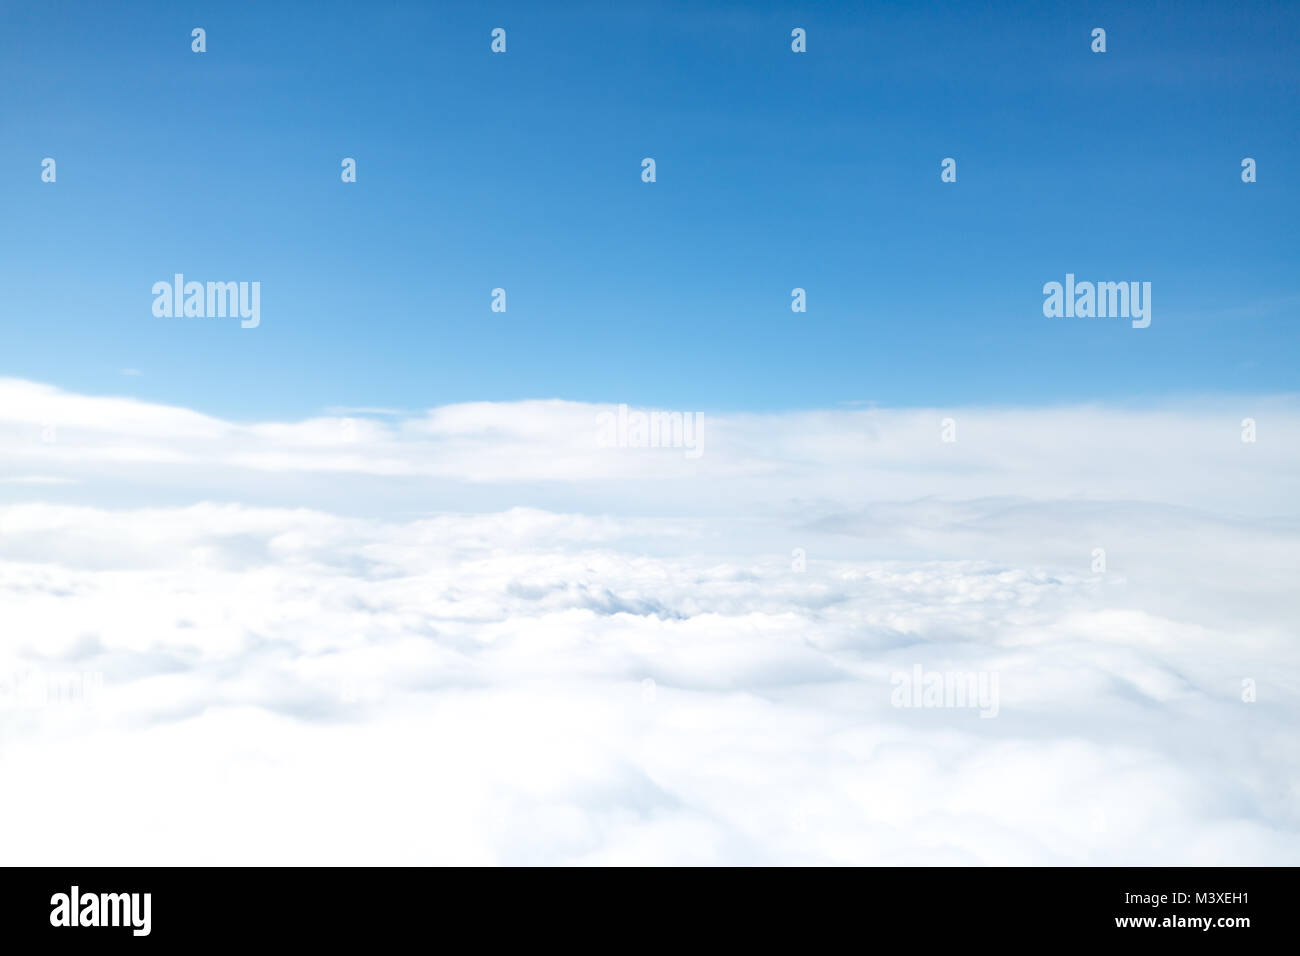 Clouds on sky background - Stock Image